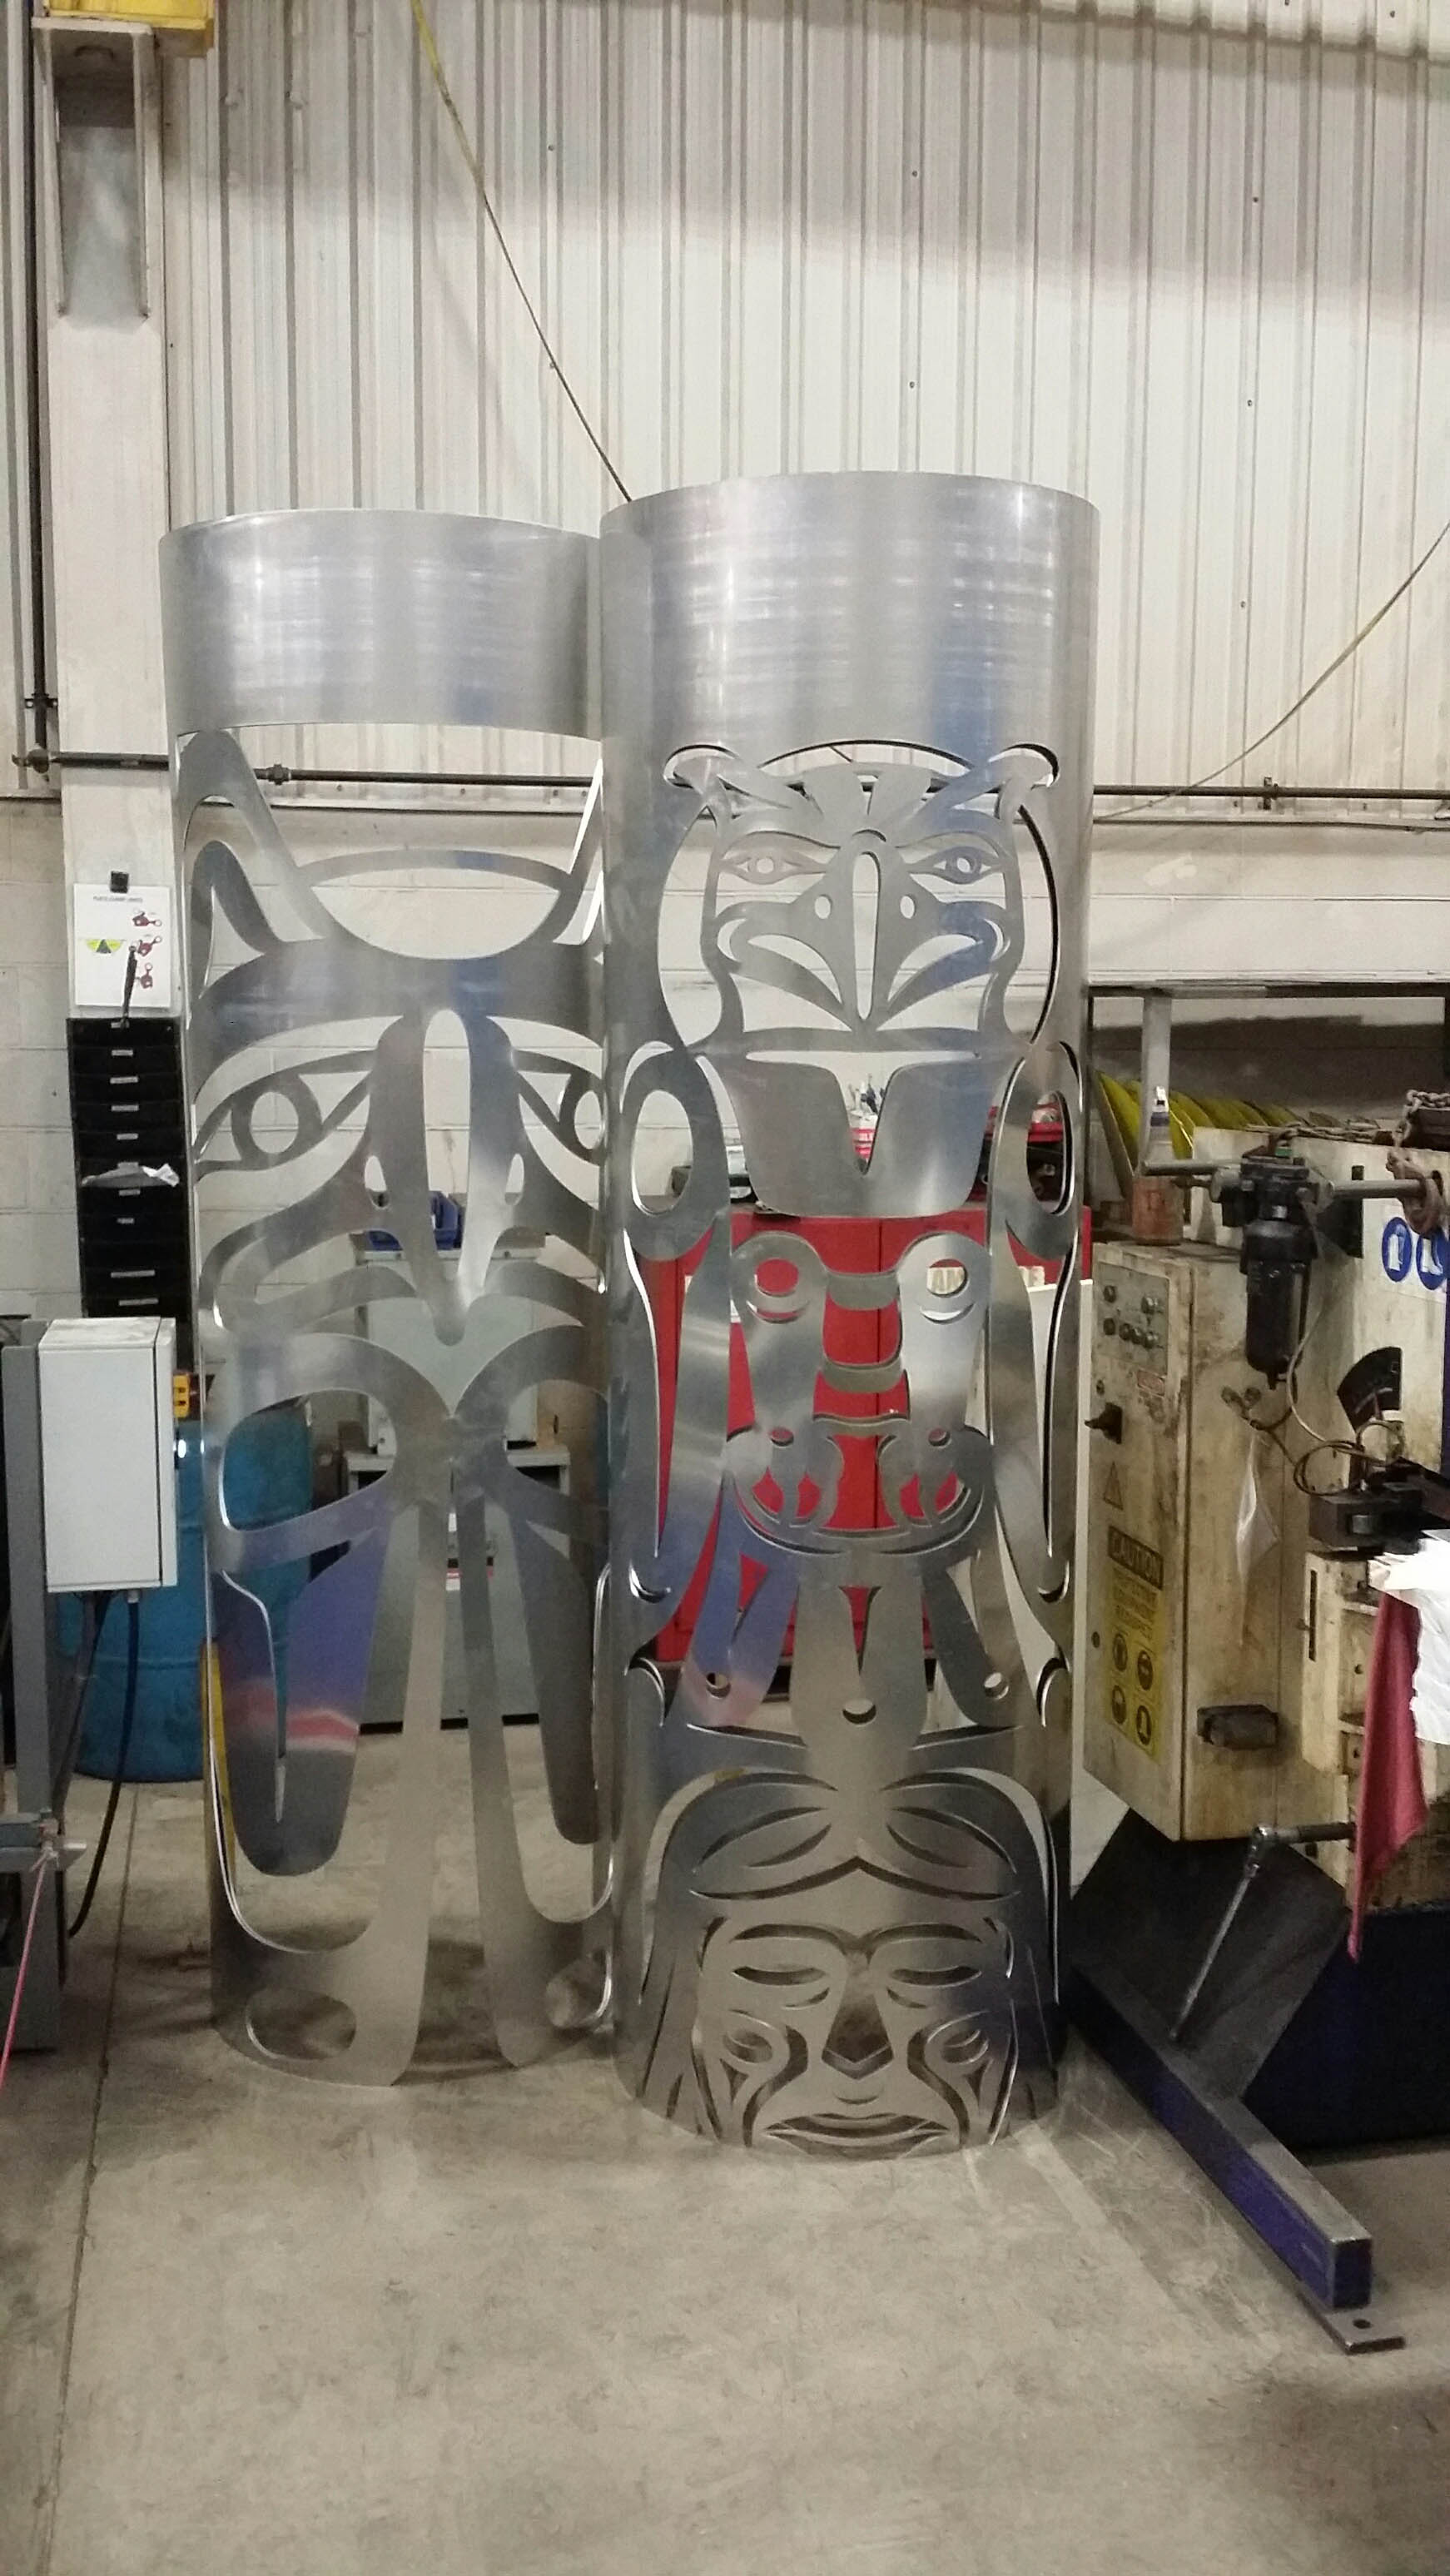 Totem poles laser cut from aluminum and rolled for an award show in western North America.